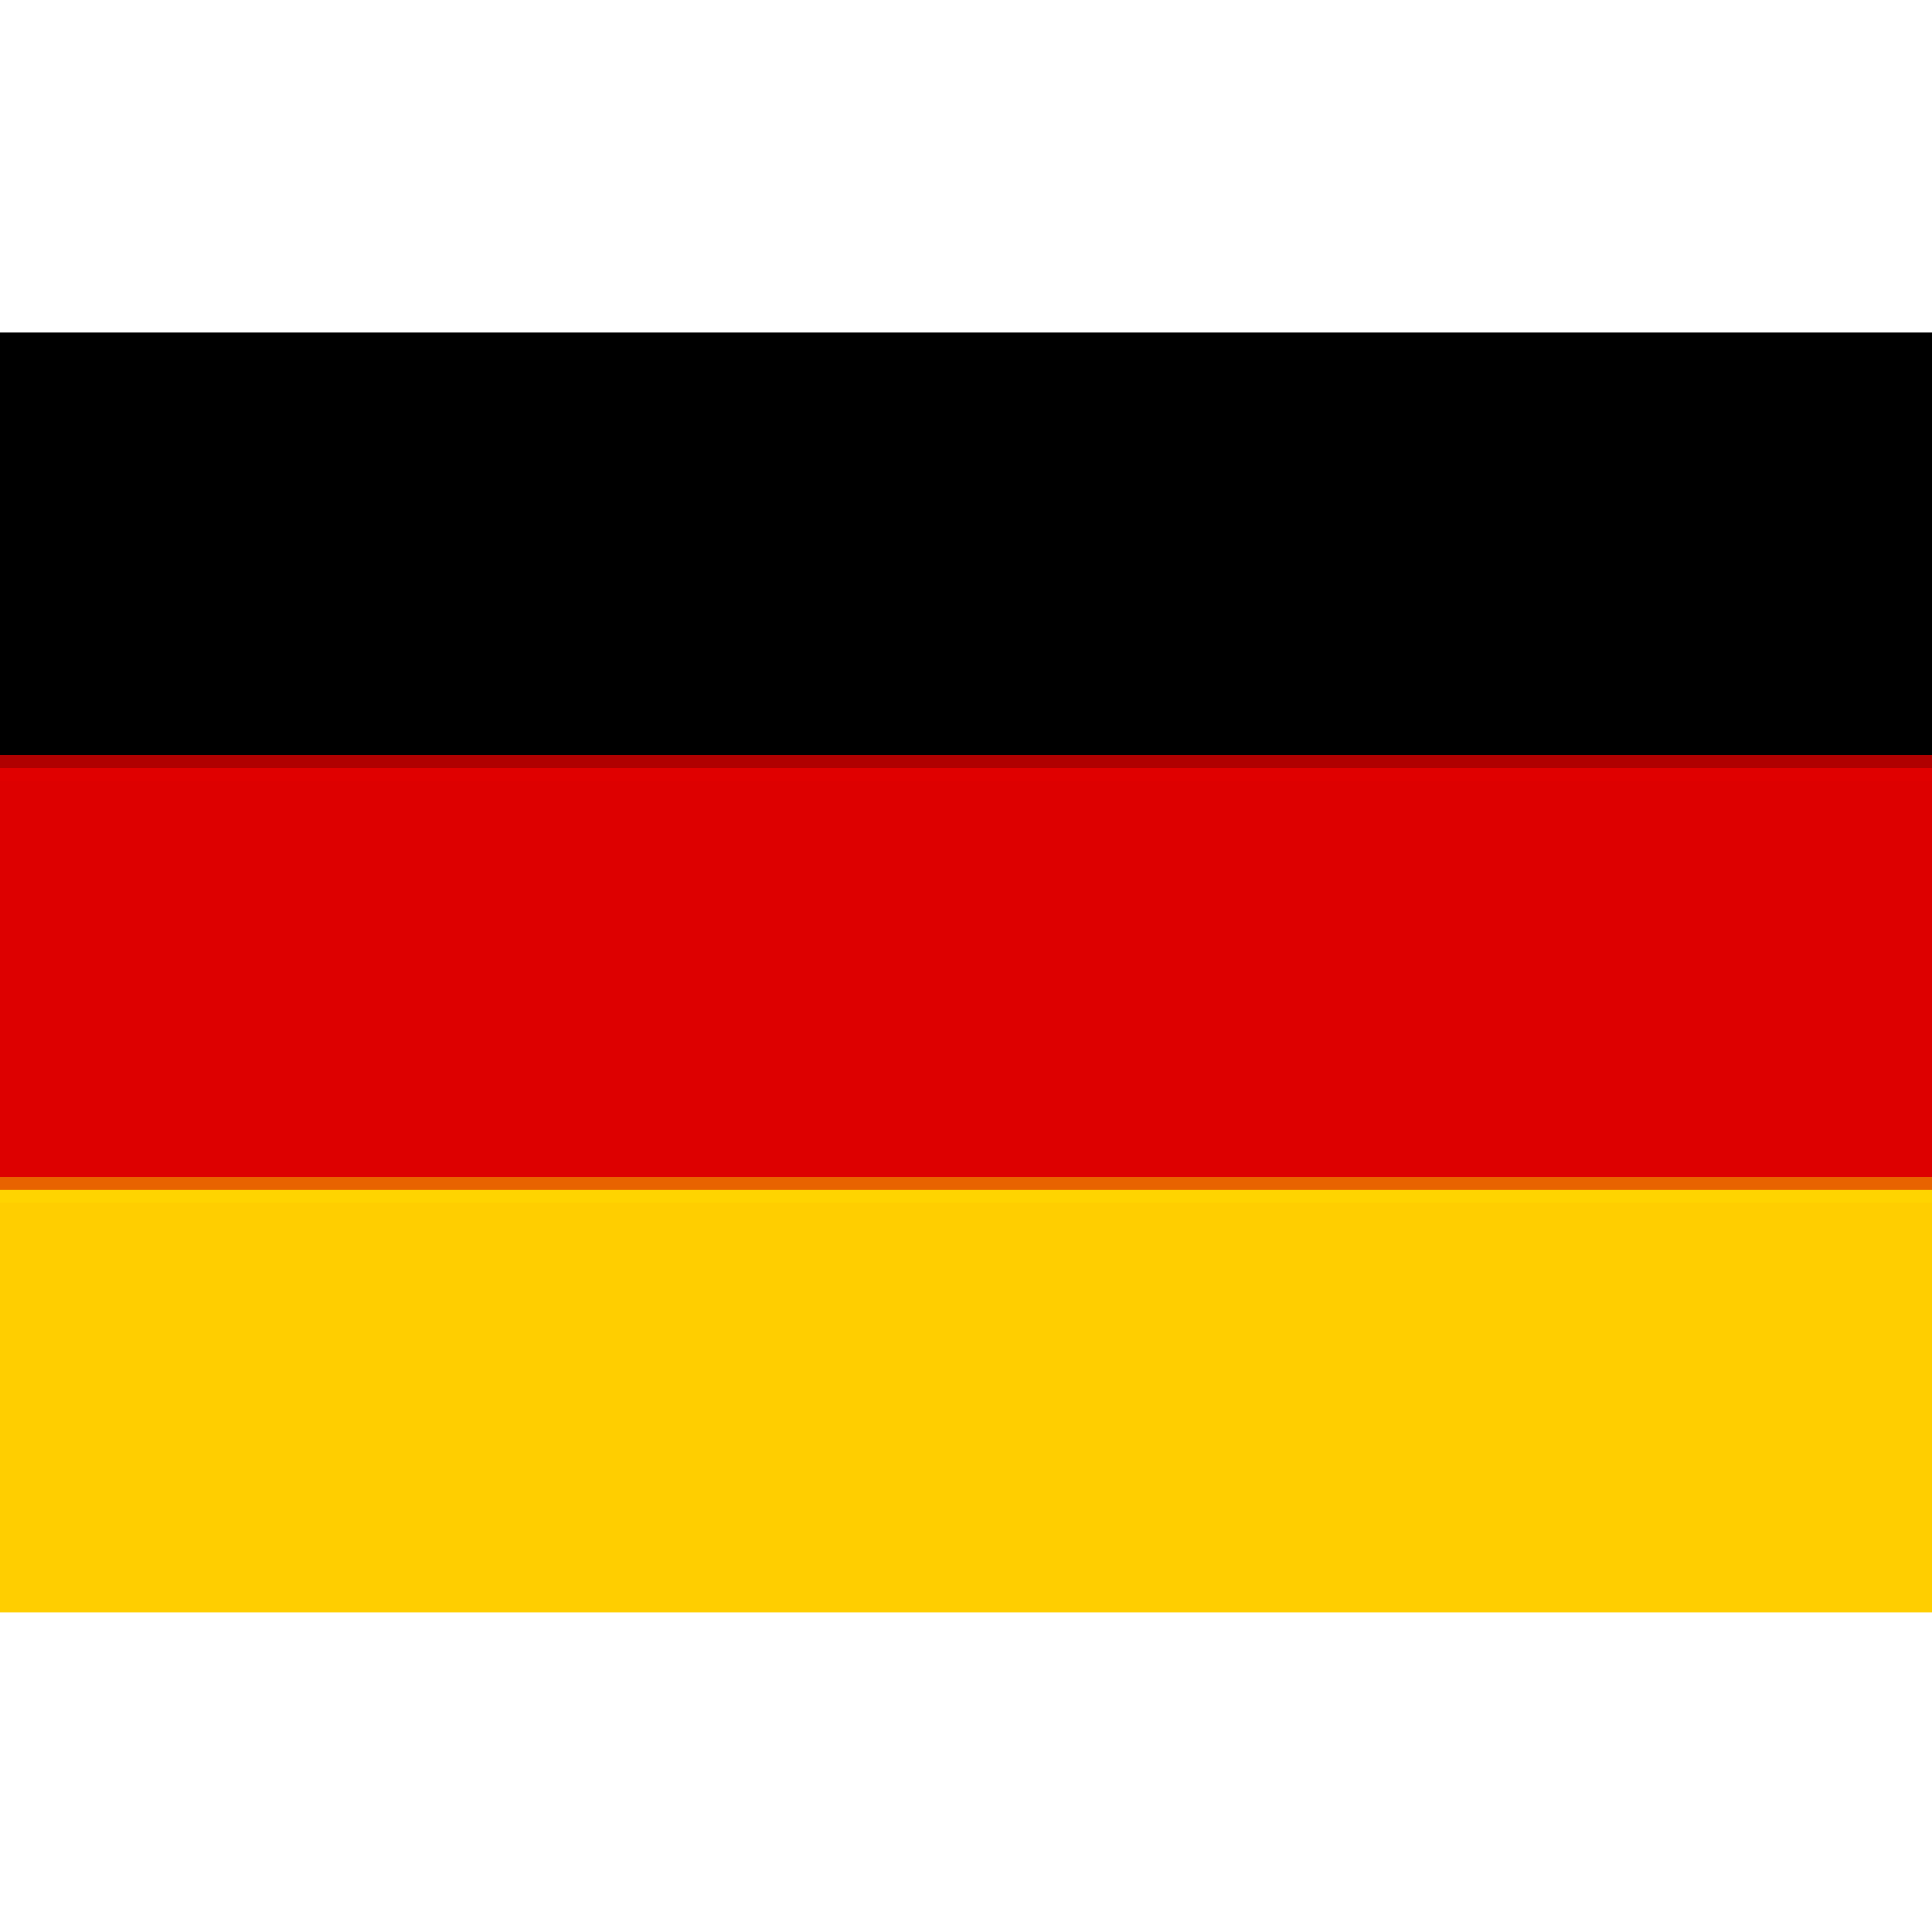 Đức (Germany)